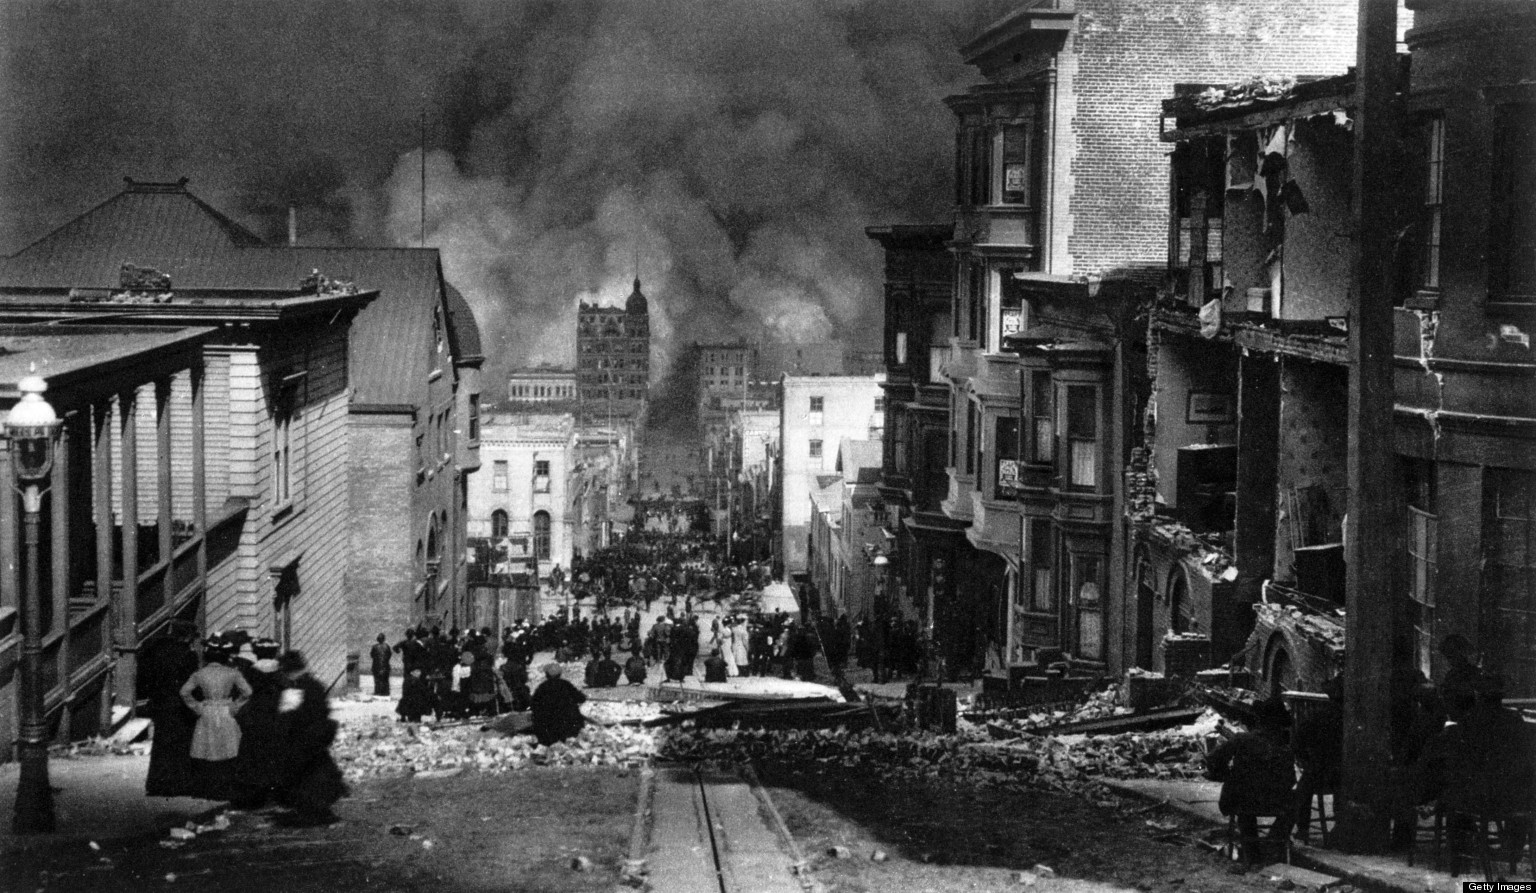 o-SAN-FRANCISCO-1906-EARTHQUAKE-ANNIVERSARY-facebook.jpg